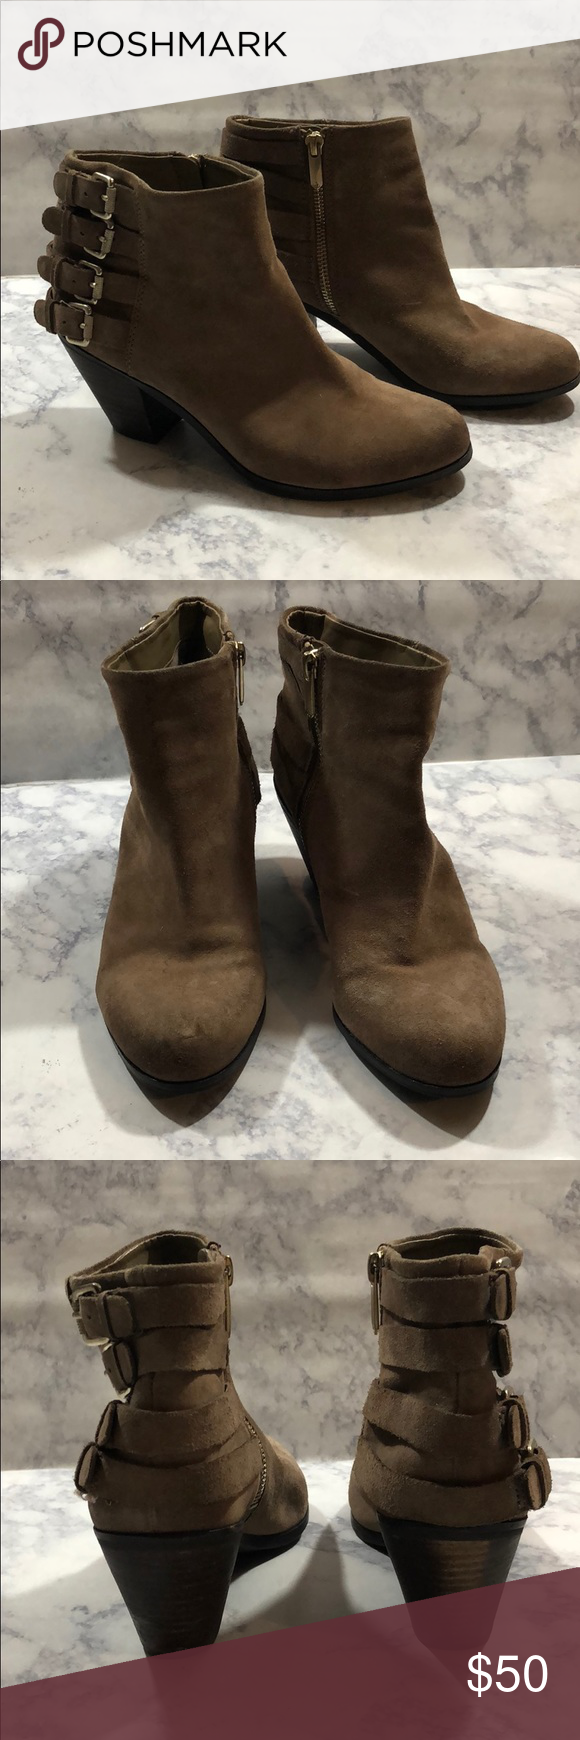 eb46c72b98f703 Sam Edelman • Lucca Suede Buckle Bootie Sam Edelman • Lucca Suede Buckle  Bootie Round toe - Suede leather construction - Topstitched detail -  Adjustable ...